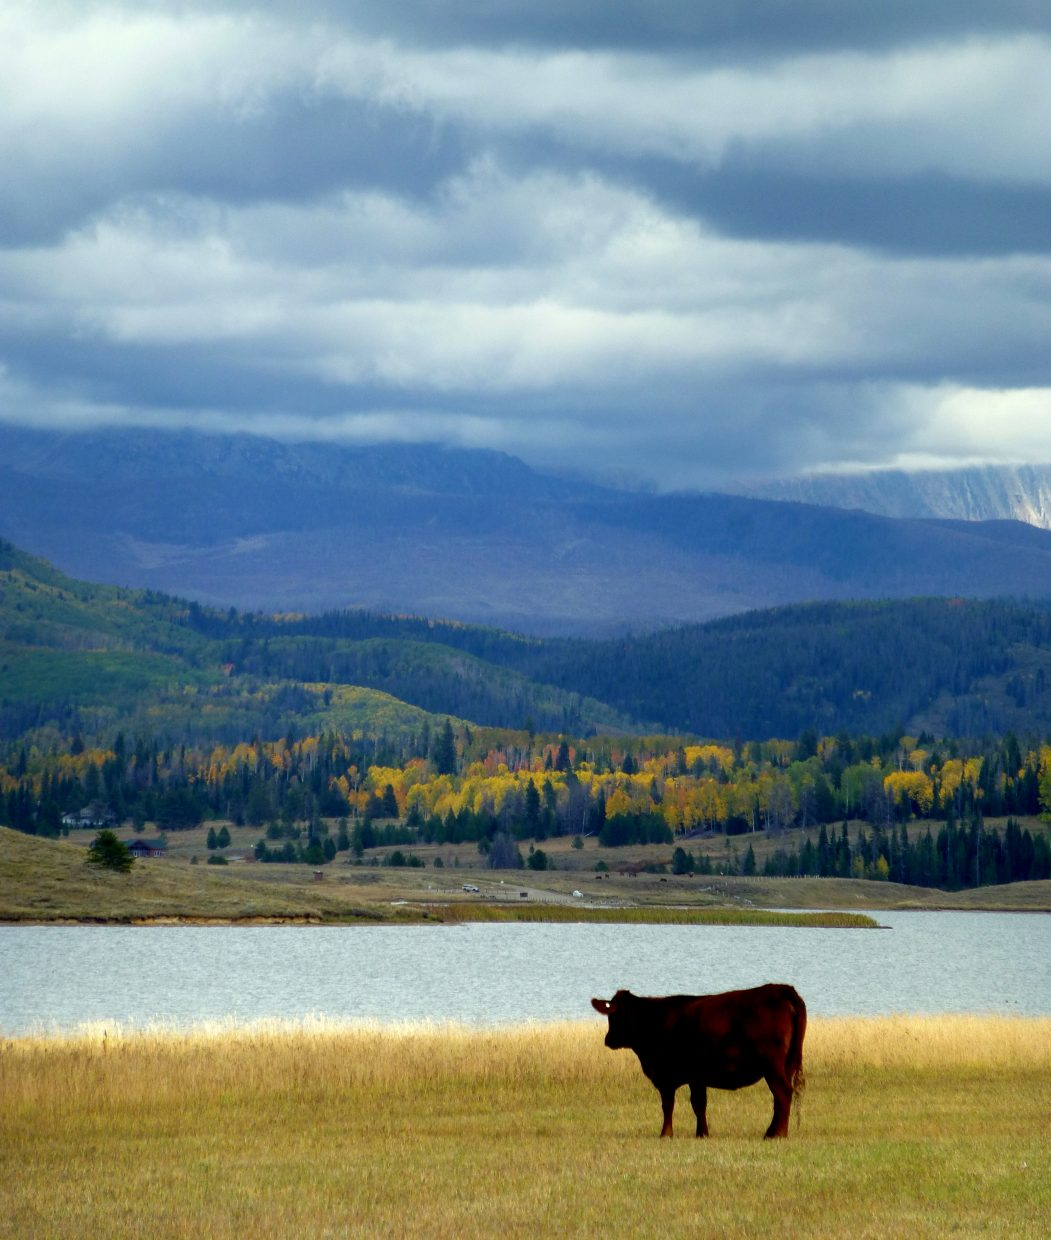 Cow at Steamboat Lake. Submitted by: Gail Hanley